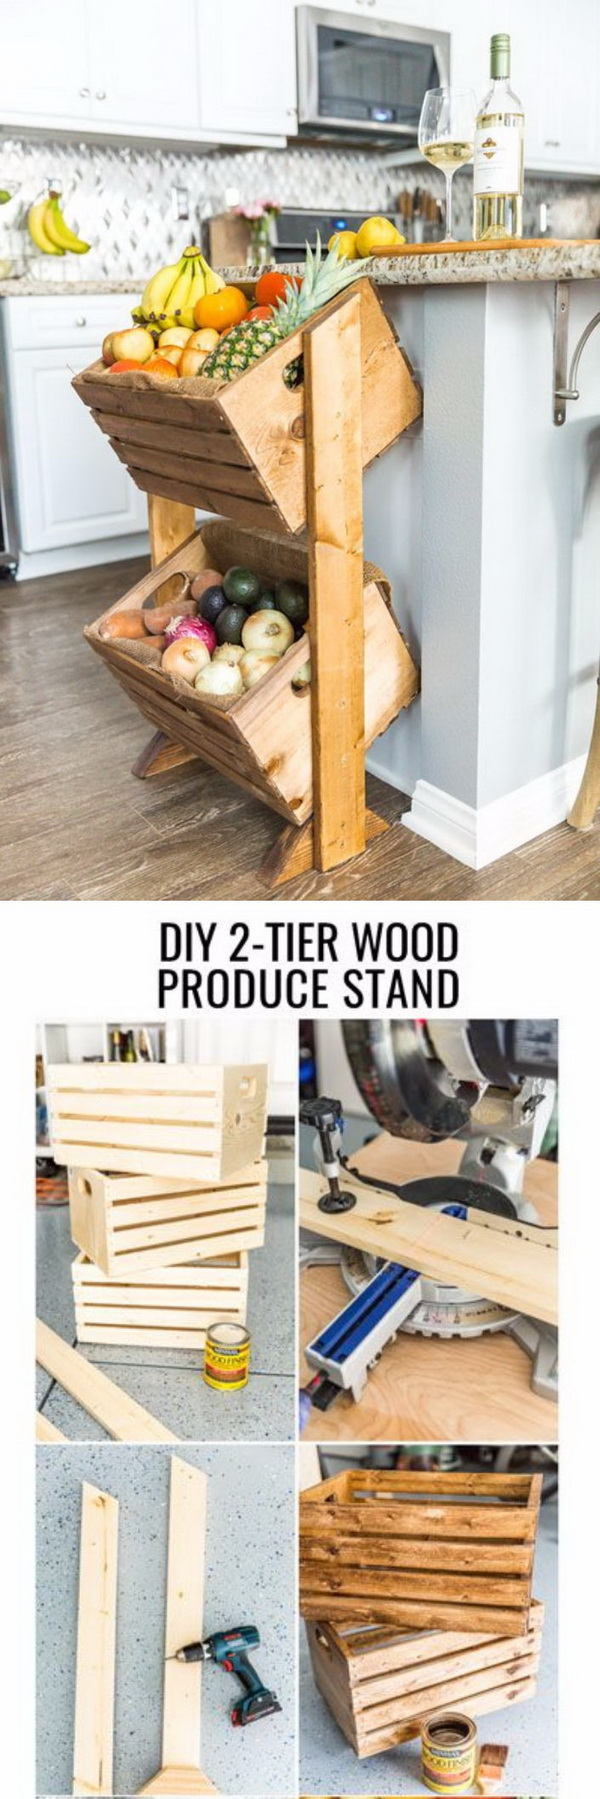 DIY Wood Crate Produce Stand.